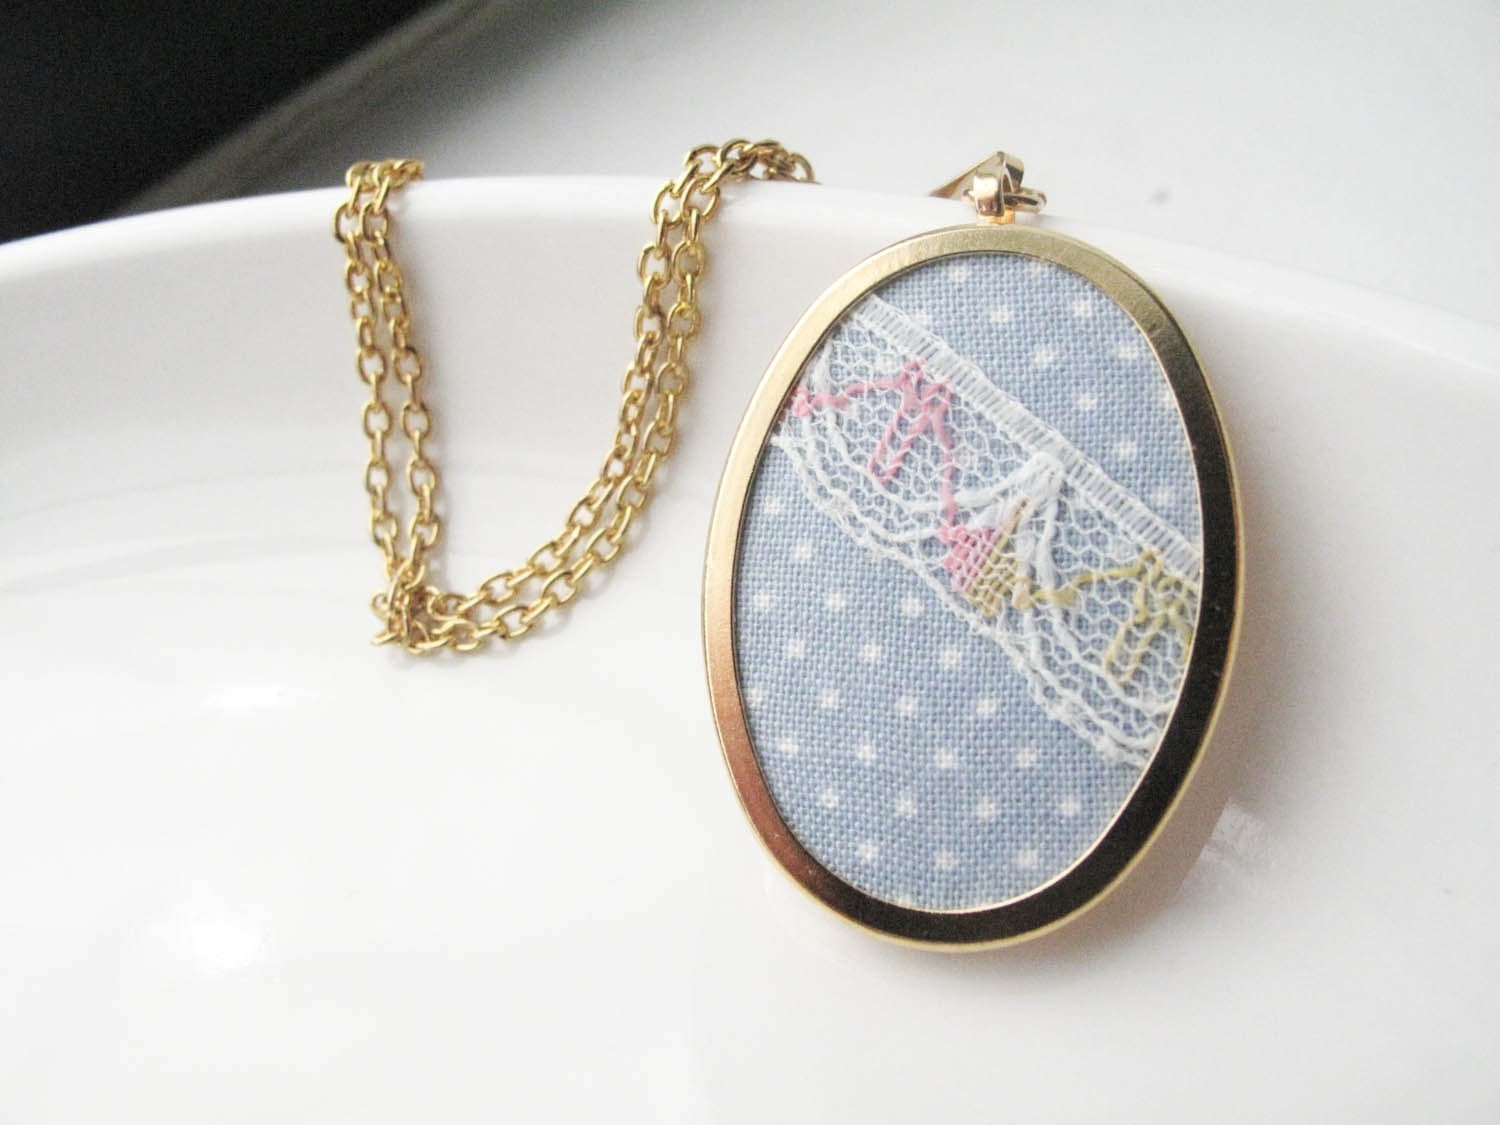 Easter Egg Necklace in Cotton Fabric and Gold